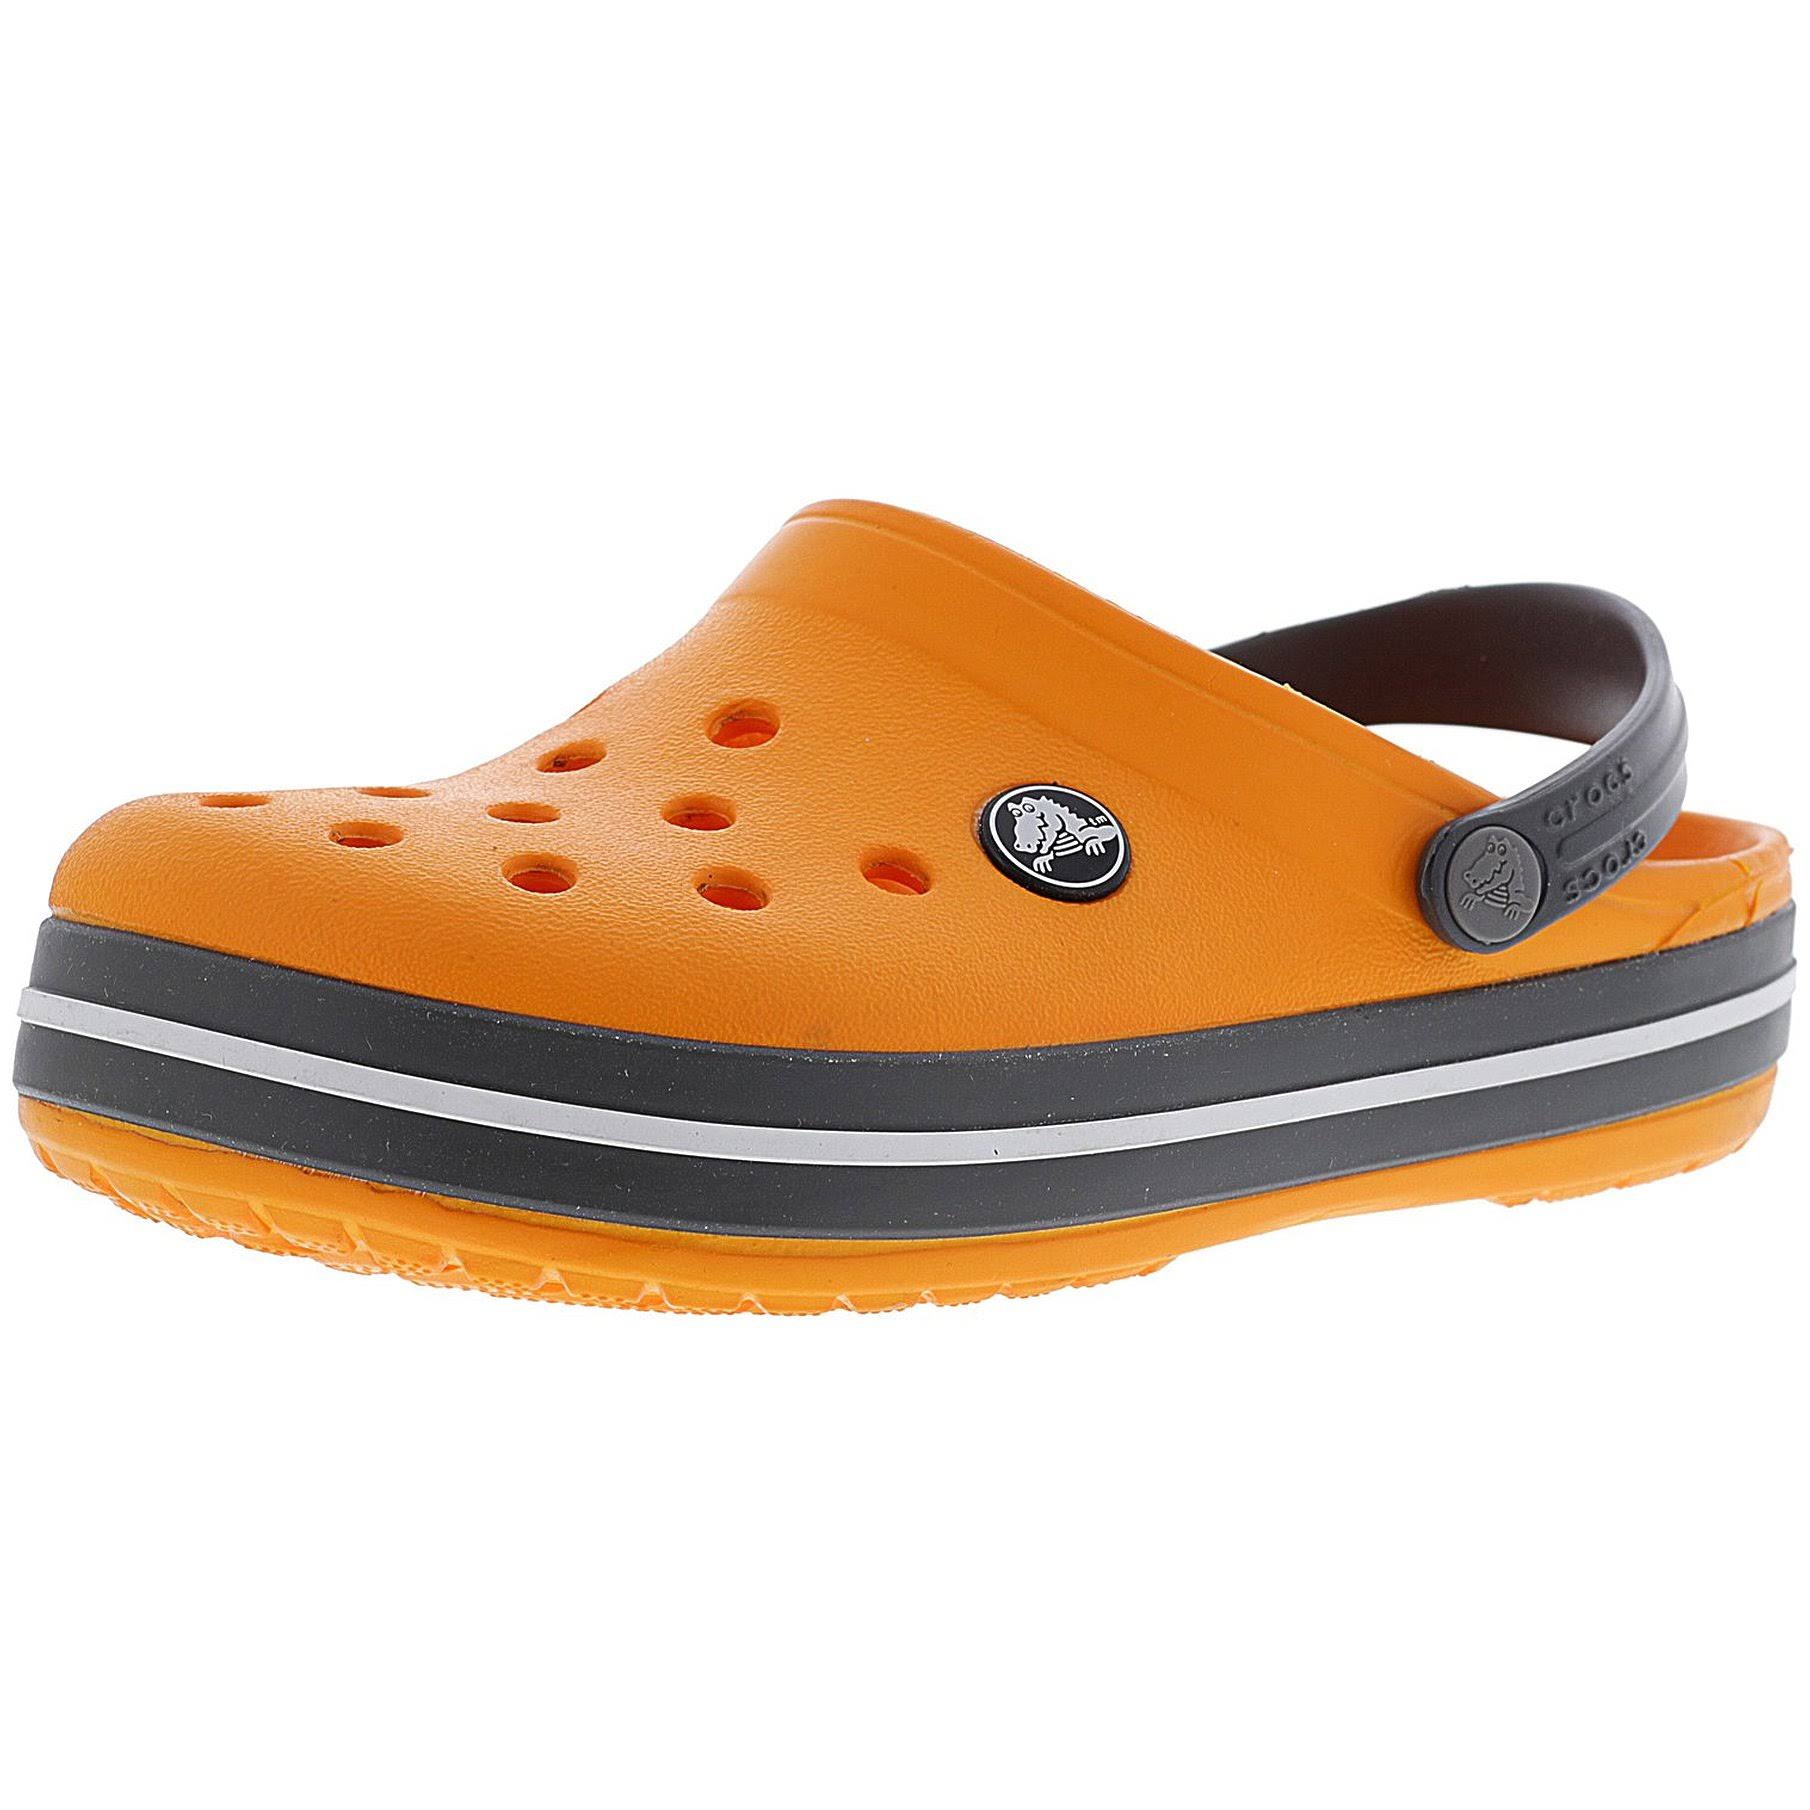 Orange Ltd Blazing Clogs Crocs Slate 8m Crocband Clog Grey Kids wpXwI6qxF